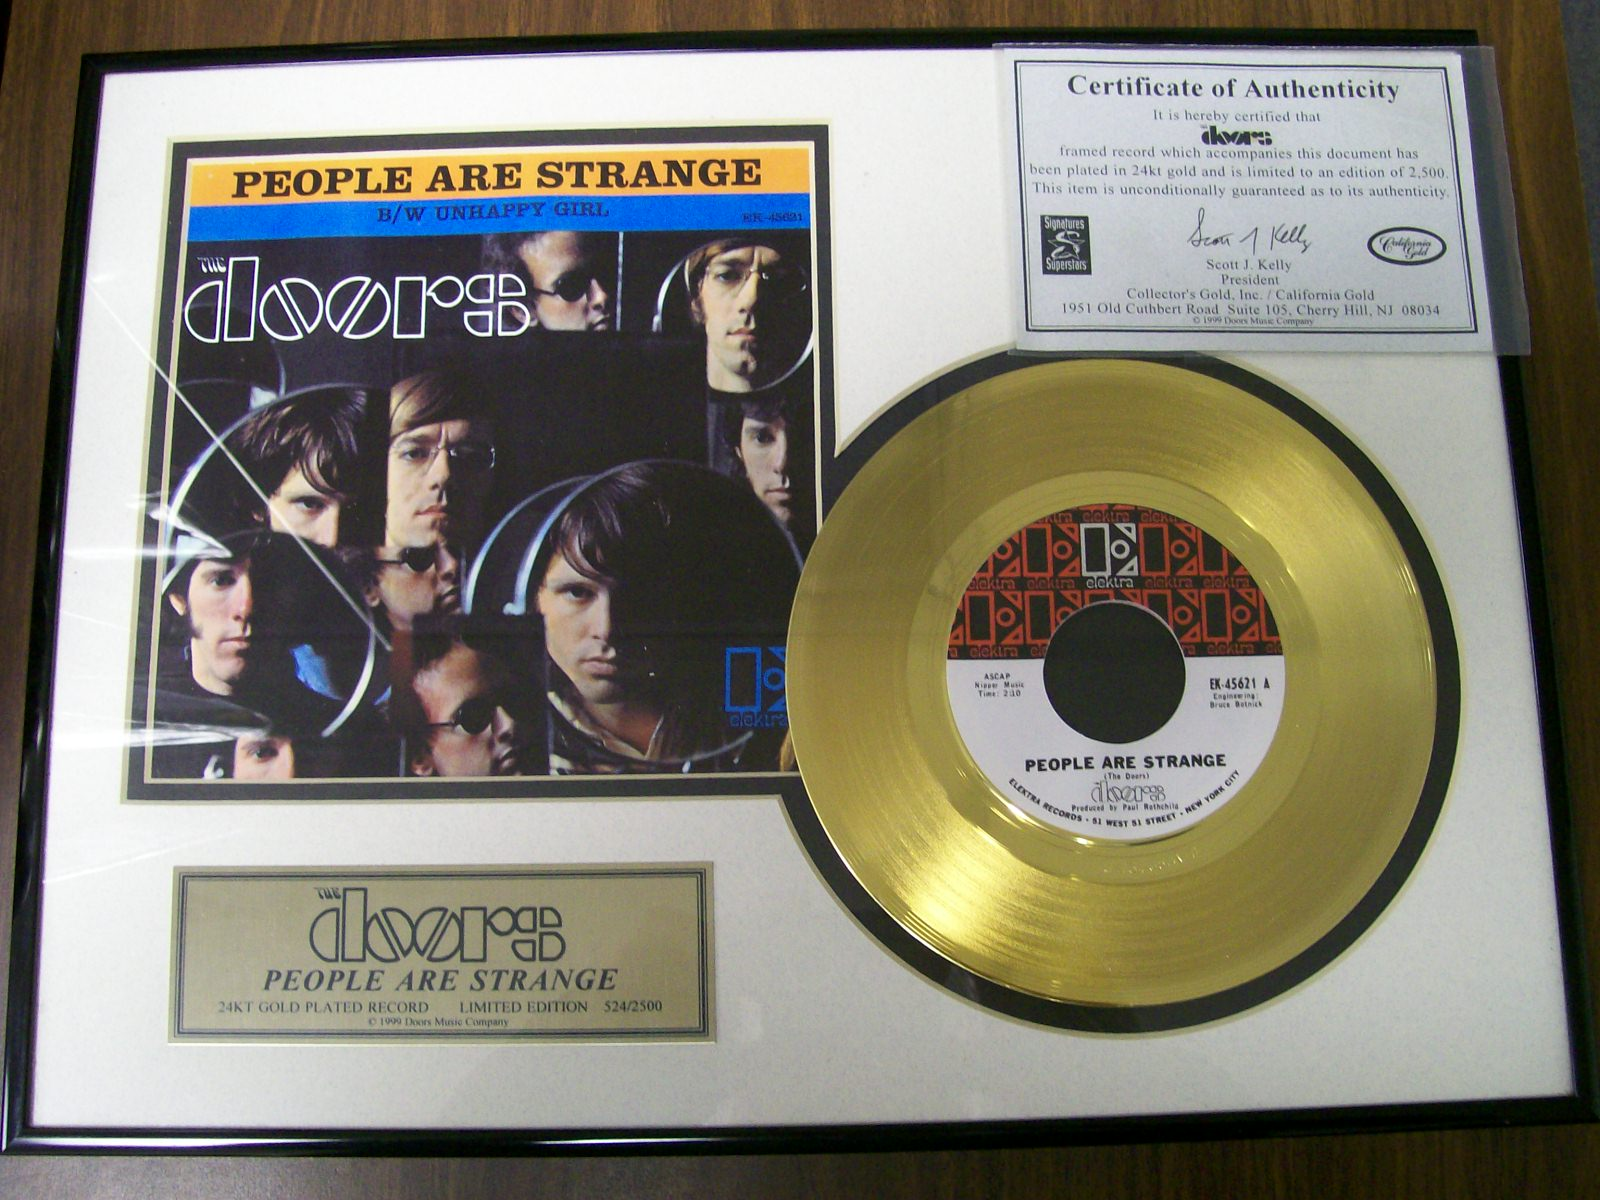 DOORS PEOPLE ARE STRANGE 24KT GOLD RECORD